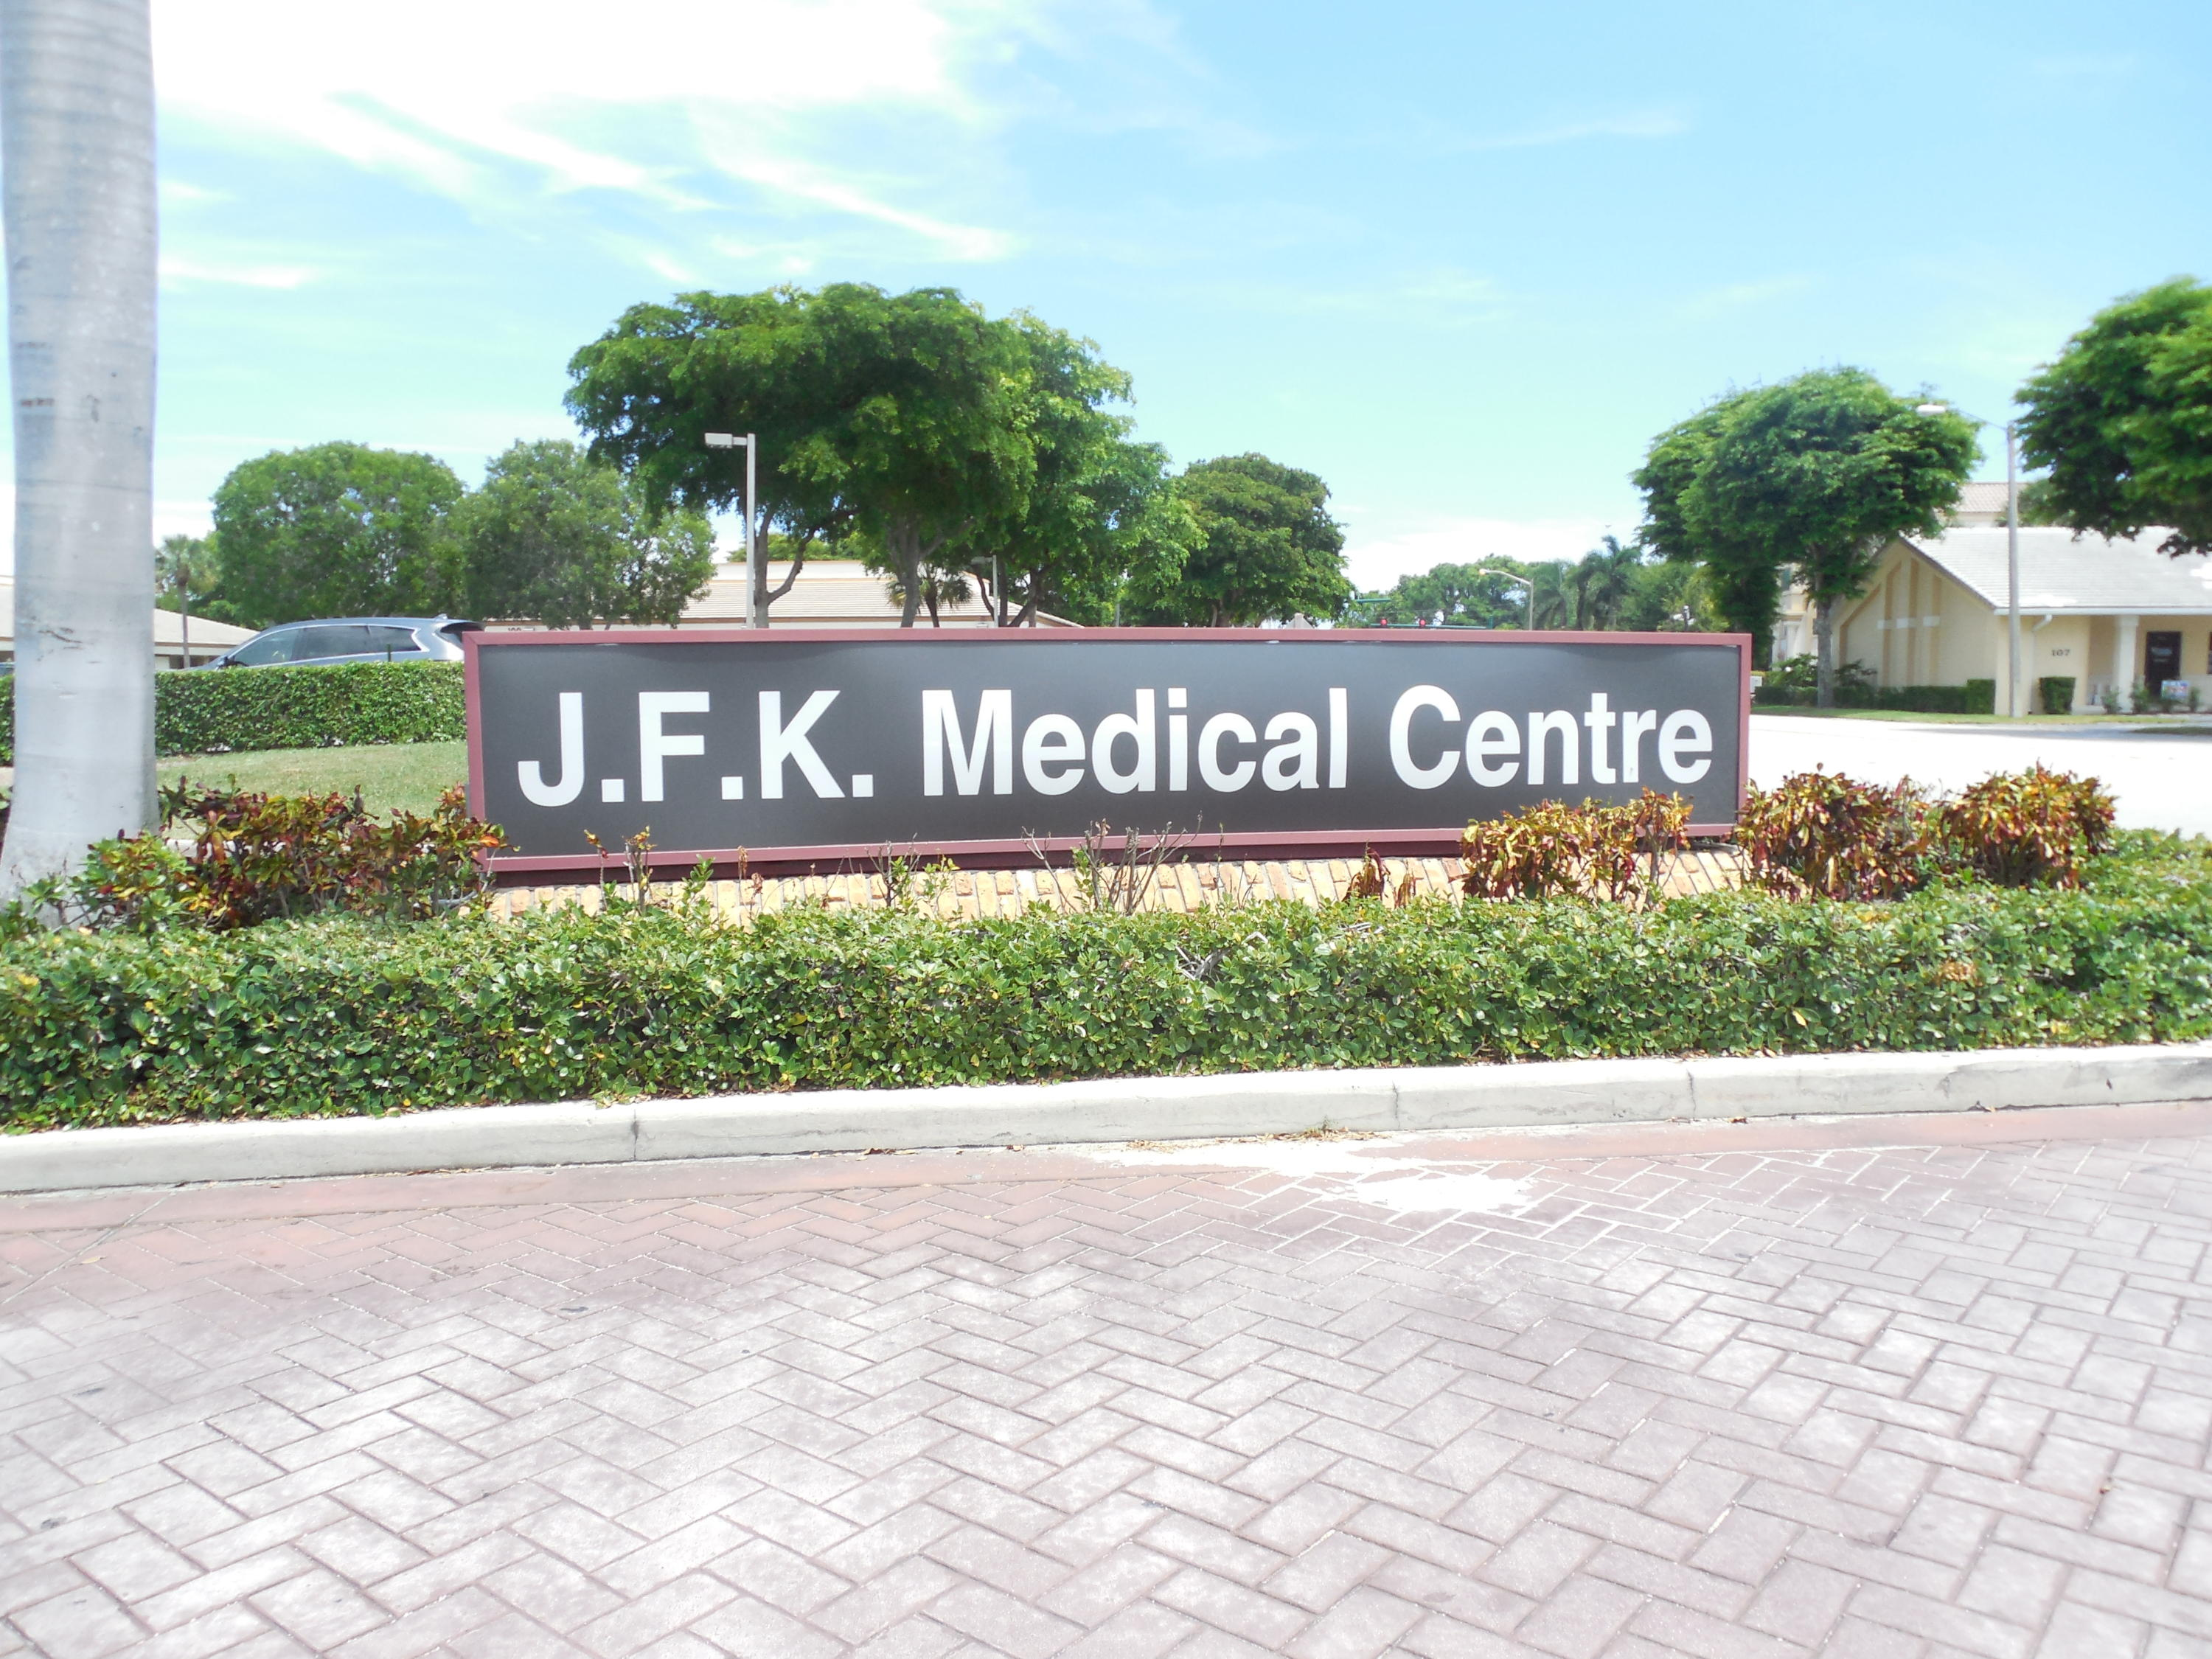 110 John F Kennedy Unit 116, Atlantis, Florida 33462